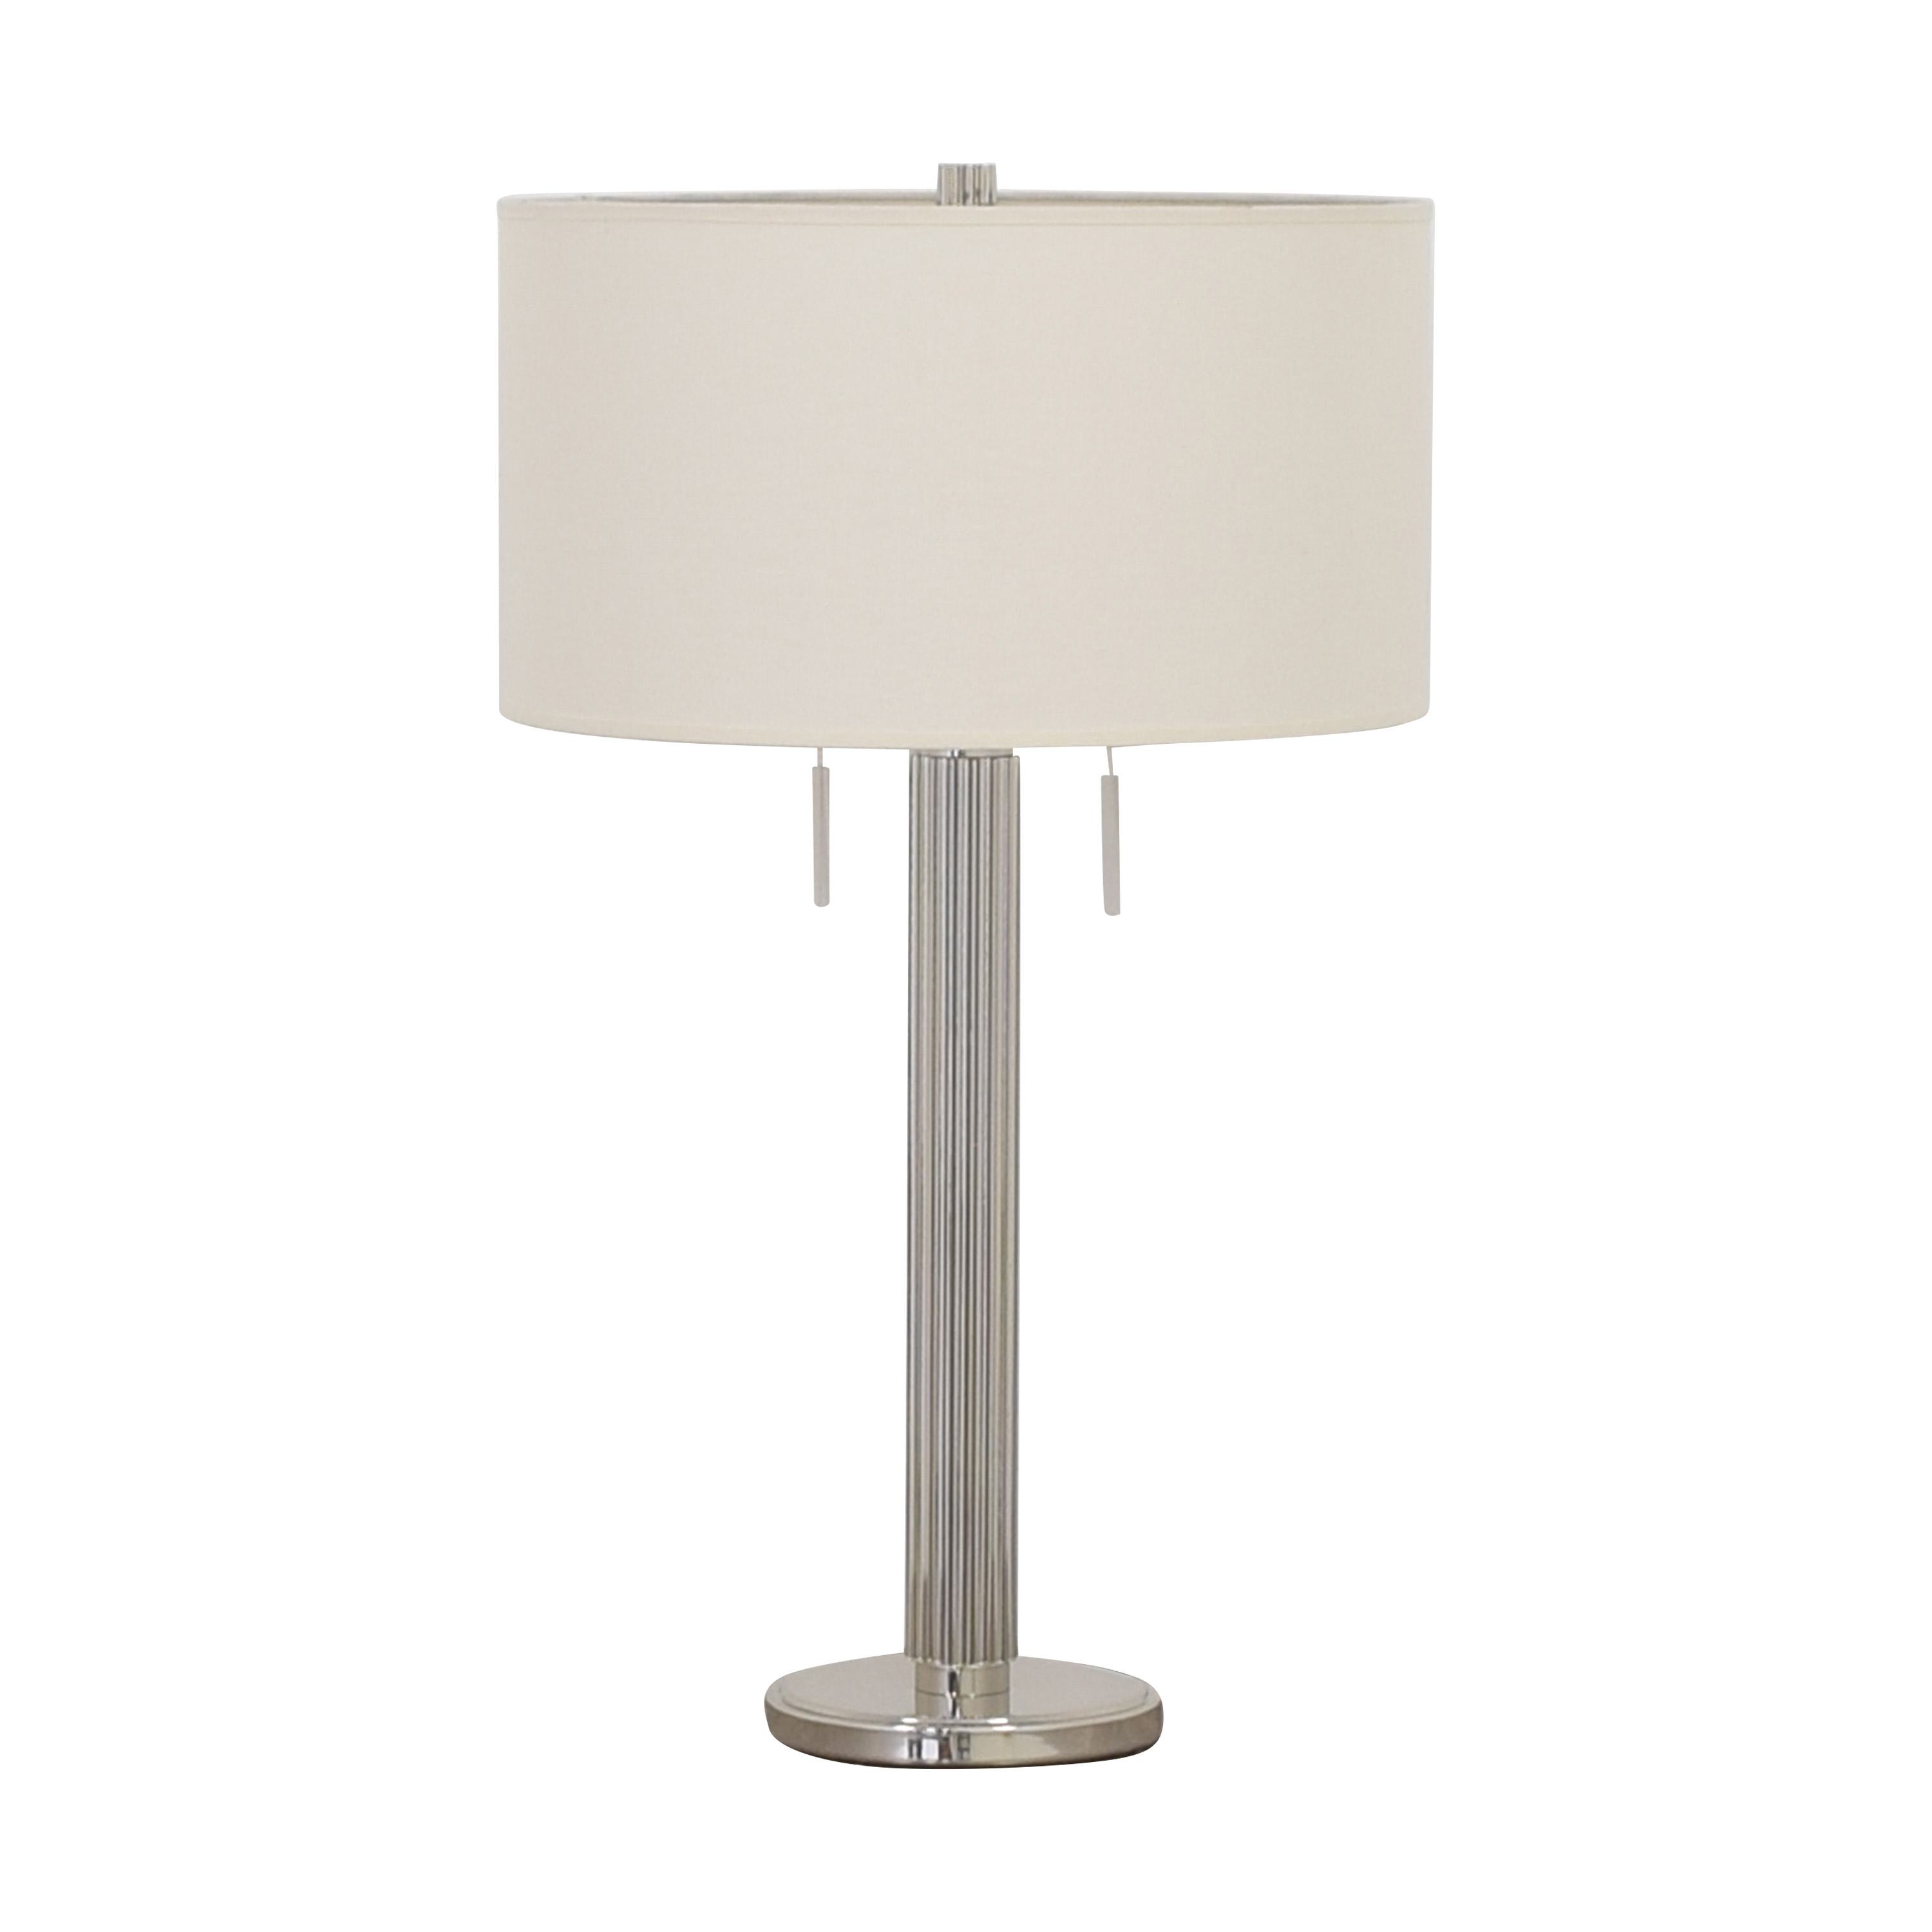 Restoration Hardware Restoration Hardware Davenport Table Lamp ct